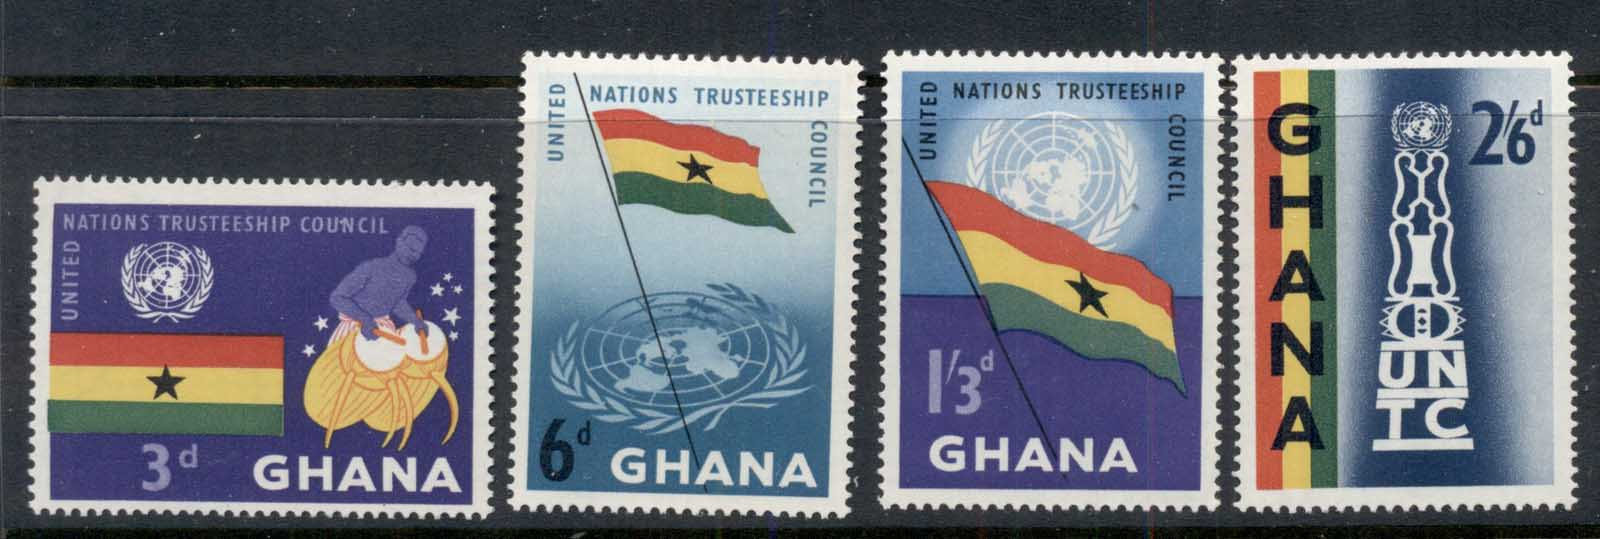 Ghana 1959 UN Trusteeship Council MUH